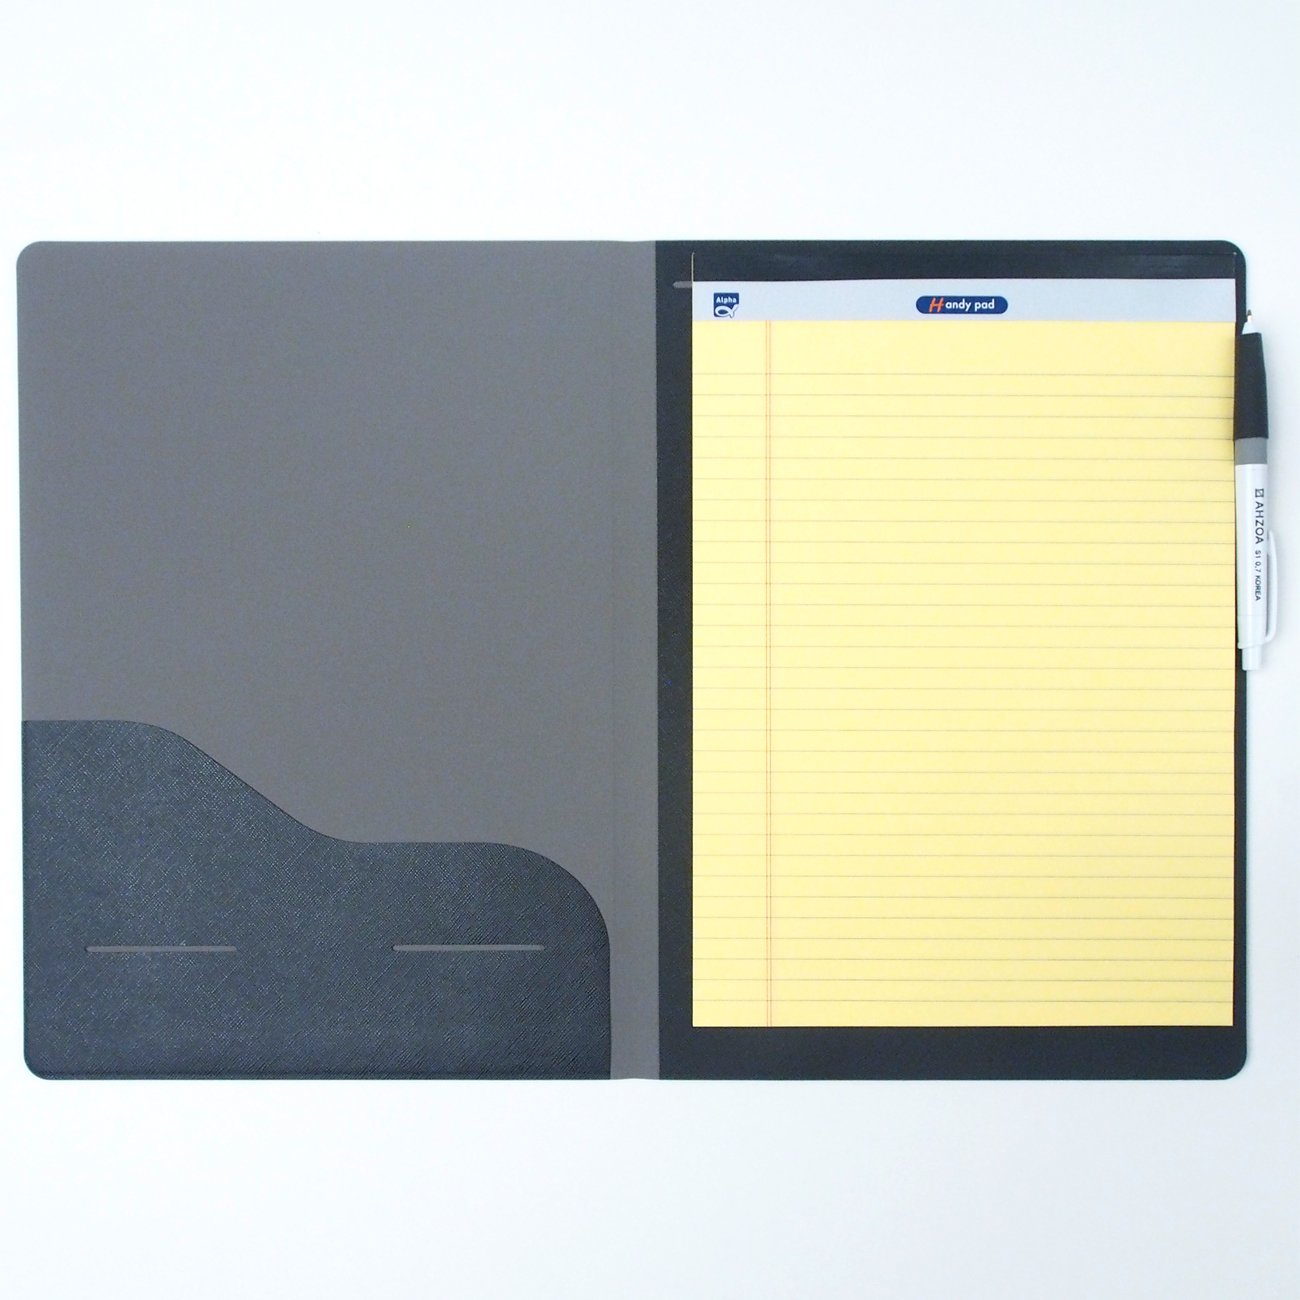 3 Pockets A4 Memo Padfolio F1 with AHZOA Pencil, Including Legal Writing Pad, Synthetic Leather About 9 X 13 inch Folder Clipboard (Black)